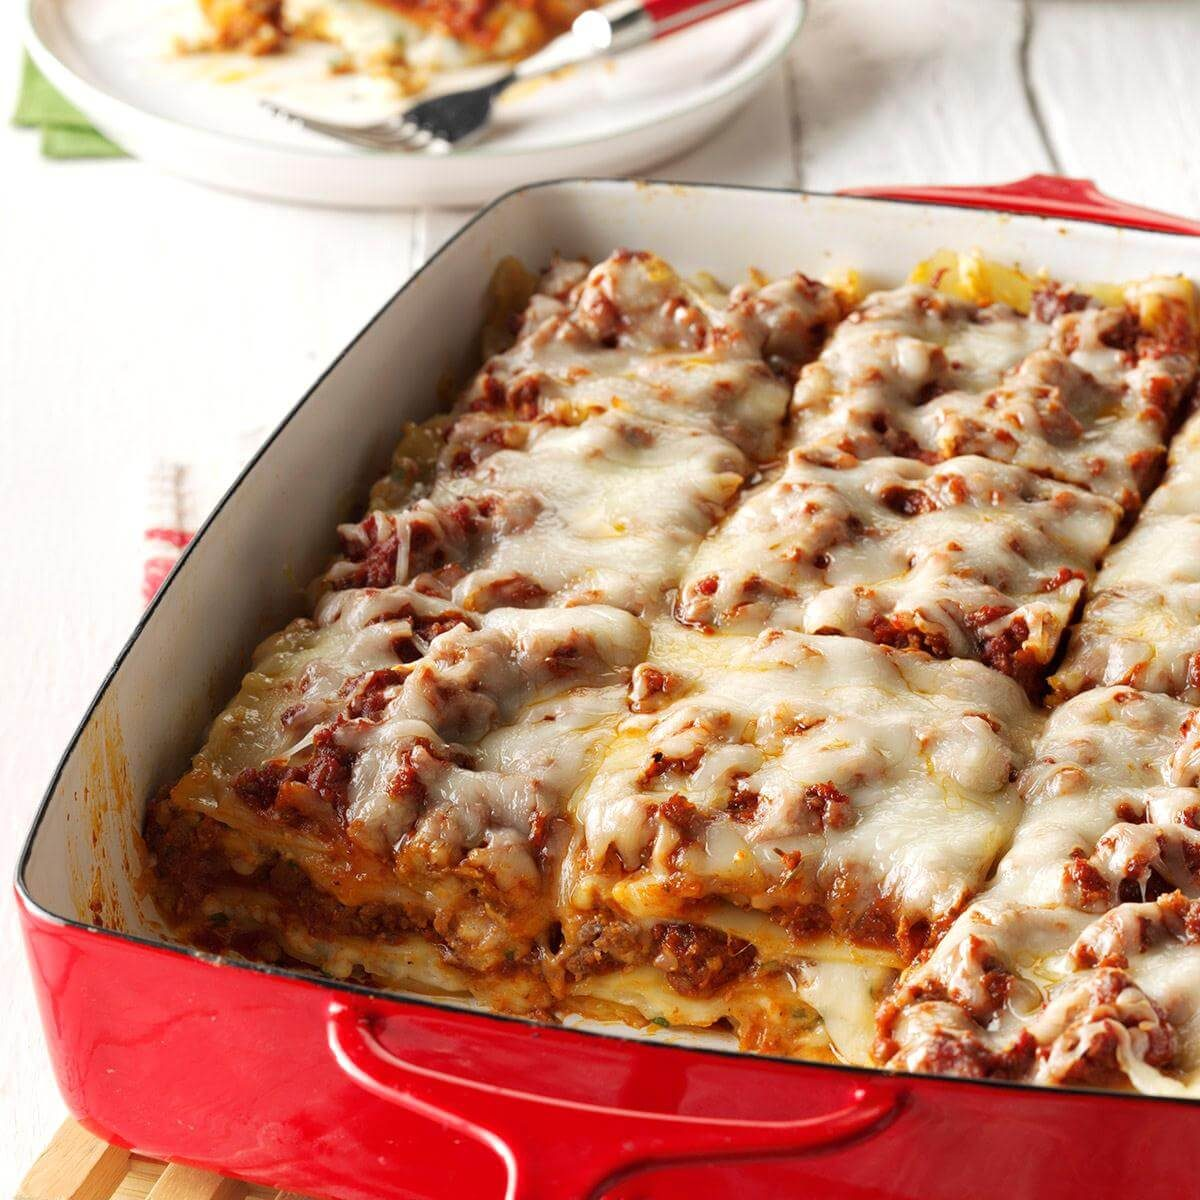 traditional lasagna recipe taste of home rh tasteofhome com lasagna made with cottage cheese and ricotta cottage cheese and ricotta lasagna